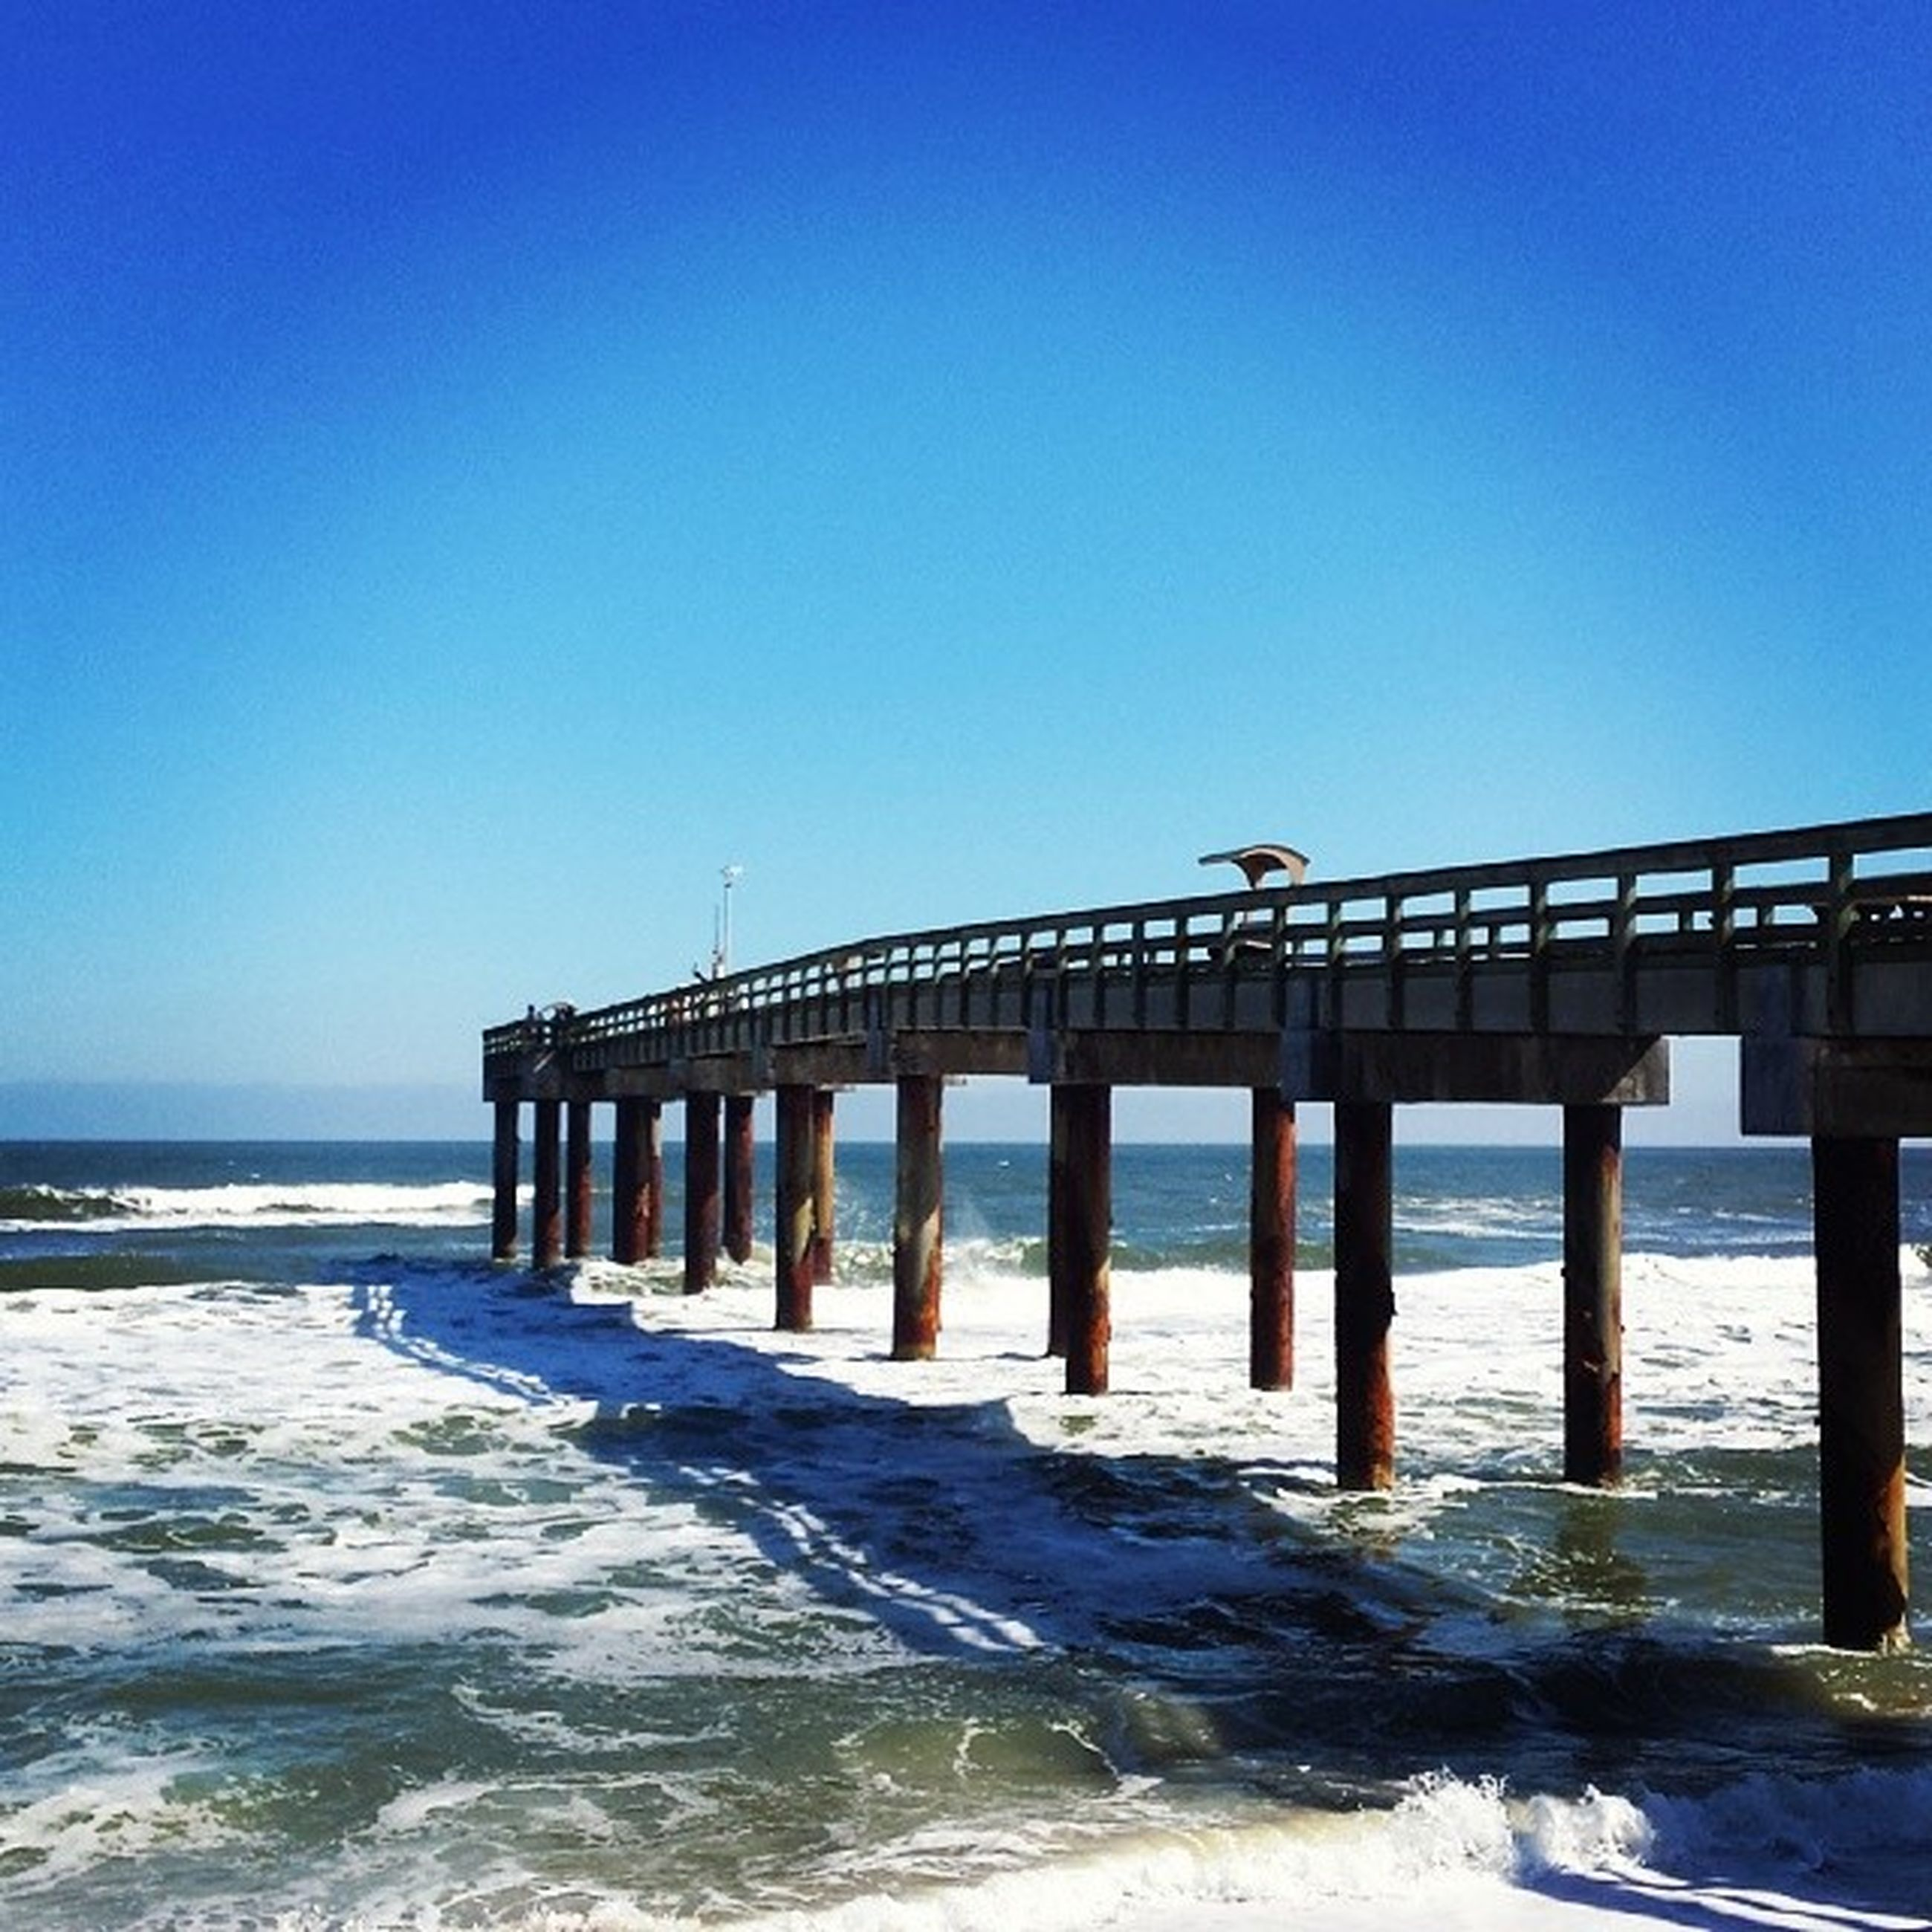 sea, water, clear sky, copy space, horizon over water, blue, beach, wave, pier, scenics, built structure, surf, nature, beauty in nature, tranquil scene, tranquility, shore, bird, architecture, waterfront